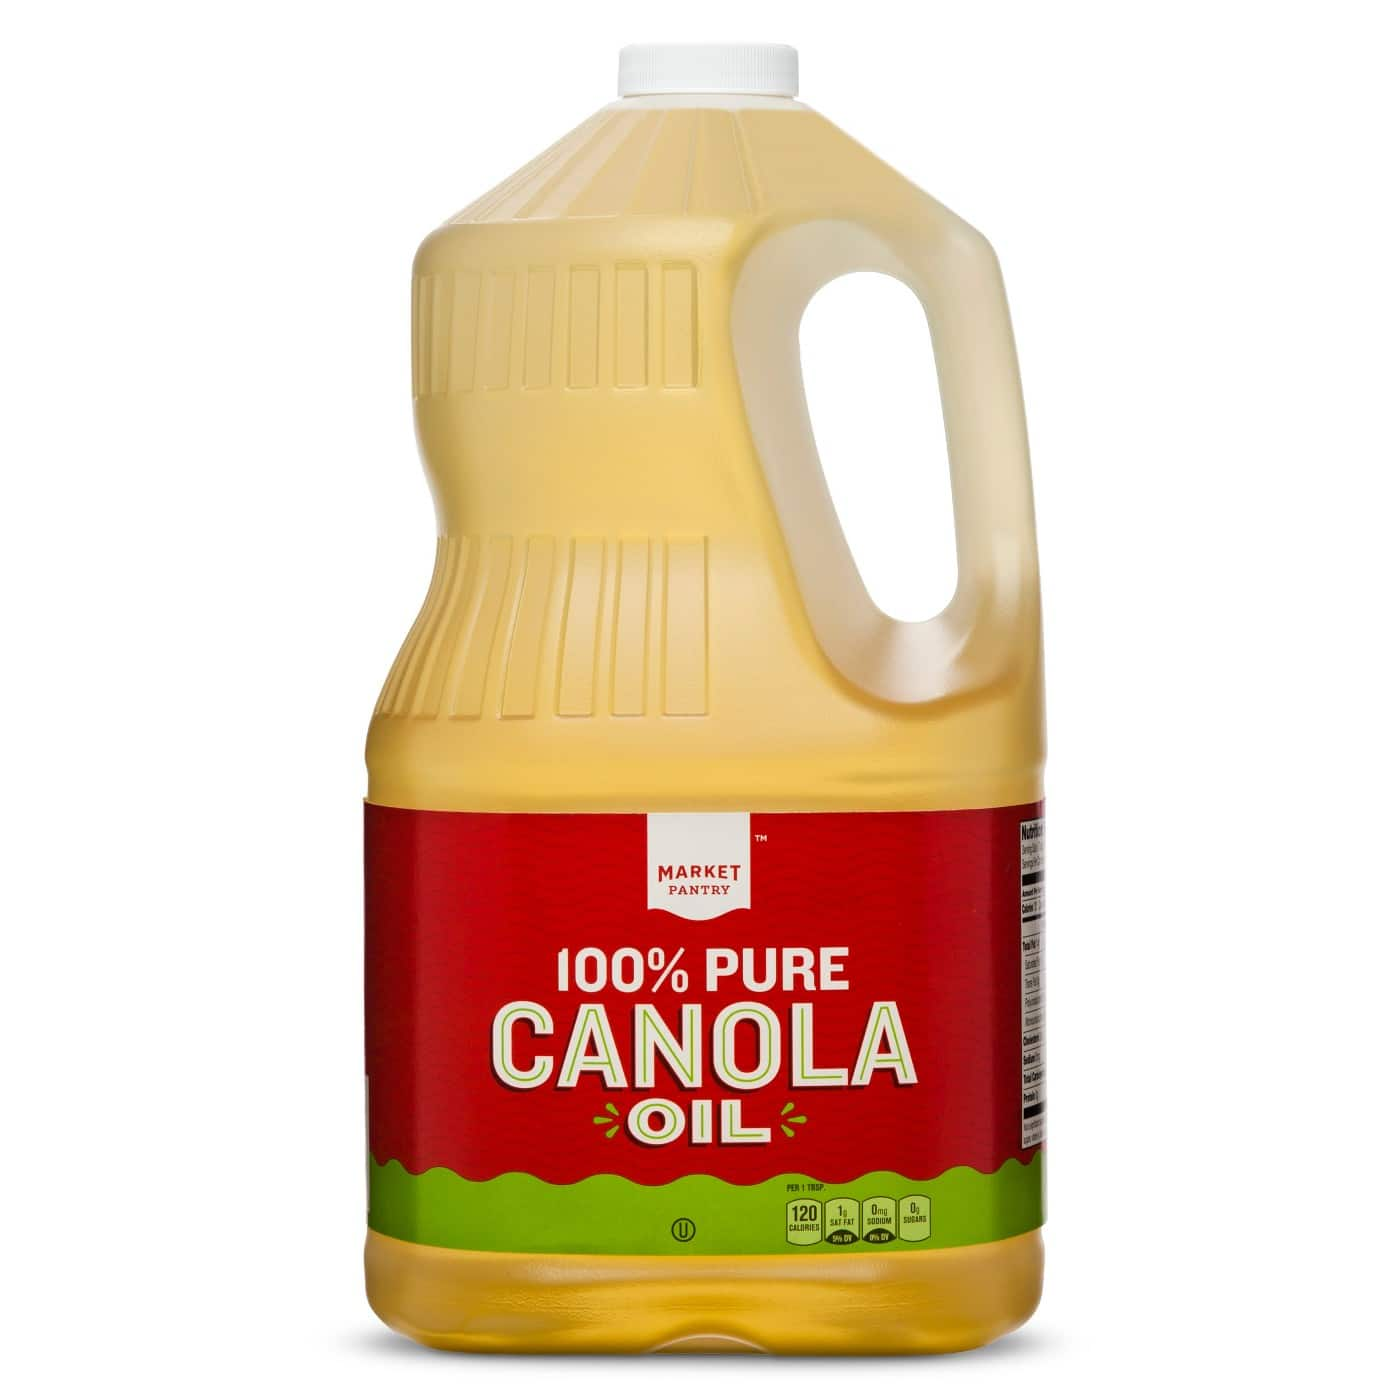 Canola Oil - 1 Gallon 128 oz cooking oil Target in store pick up $4.99